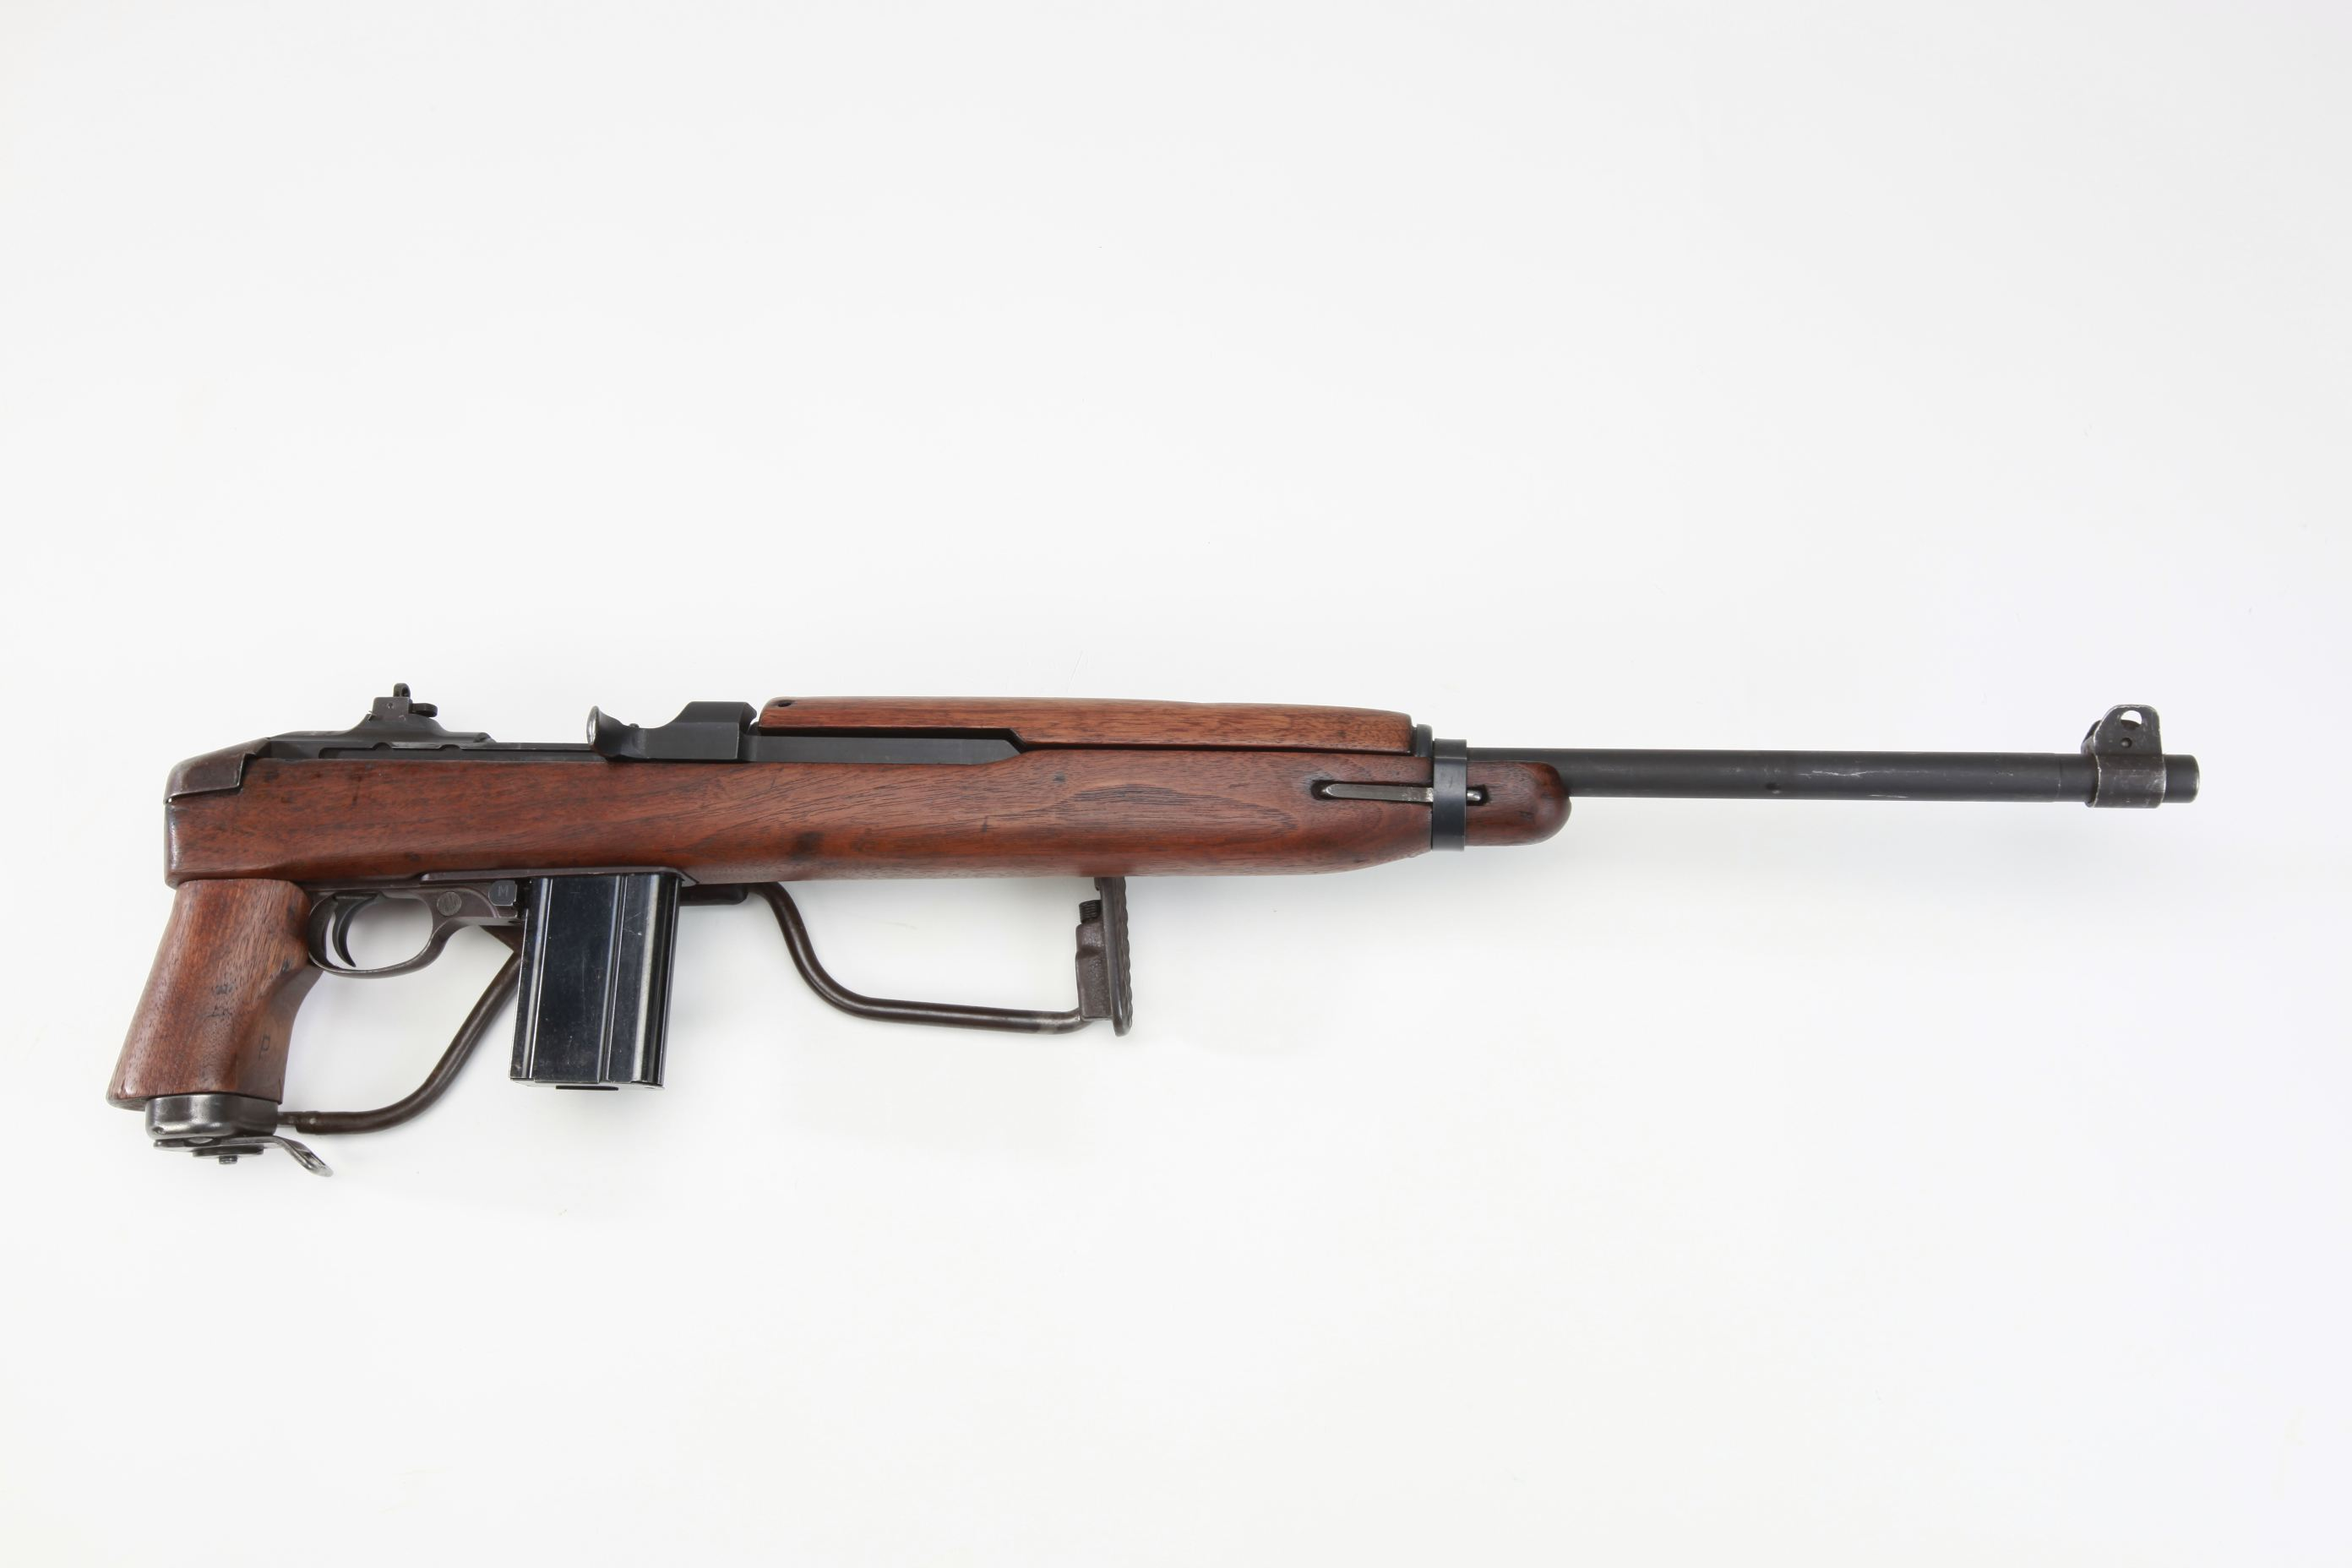 Inland Manufacturing Division (Dayton, OH) M1A1 Semi-Automatic Carbine